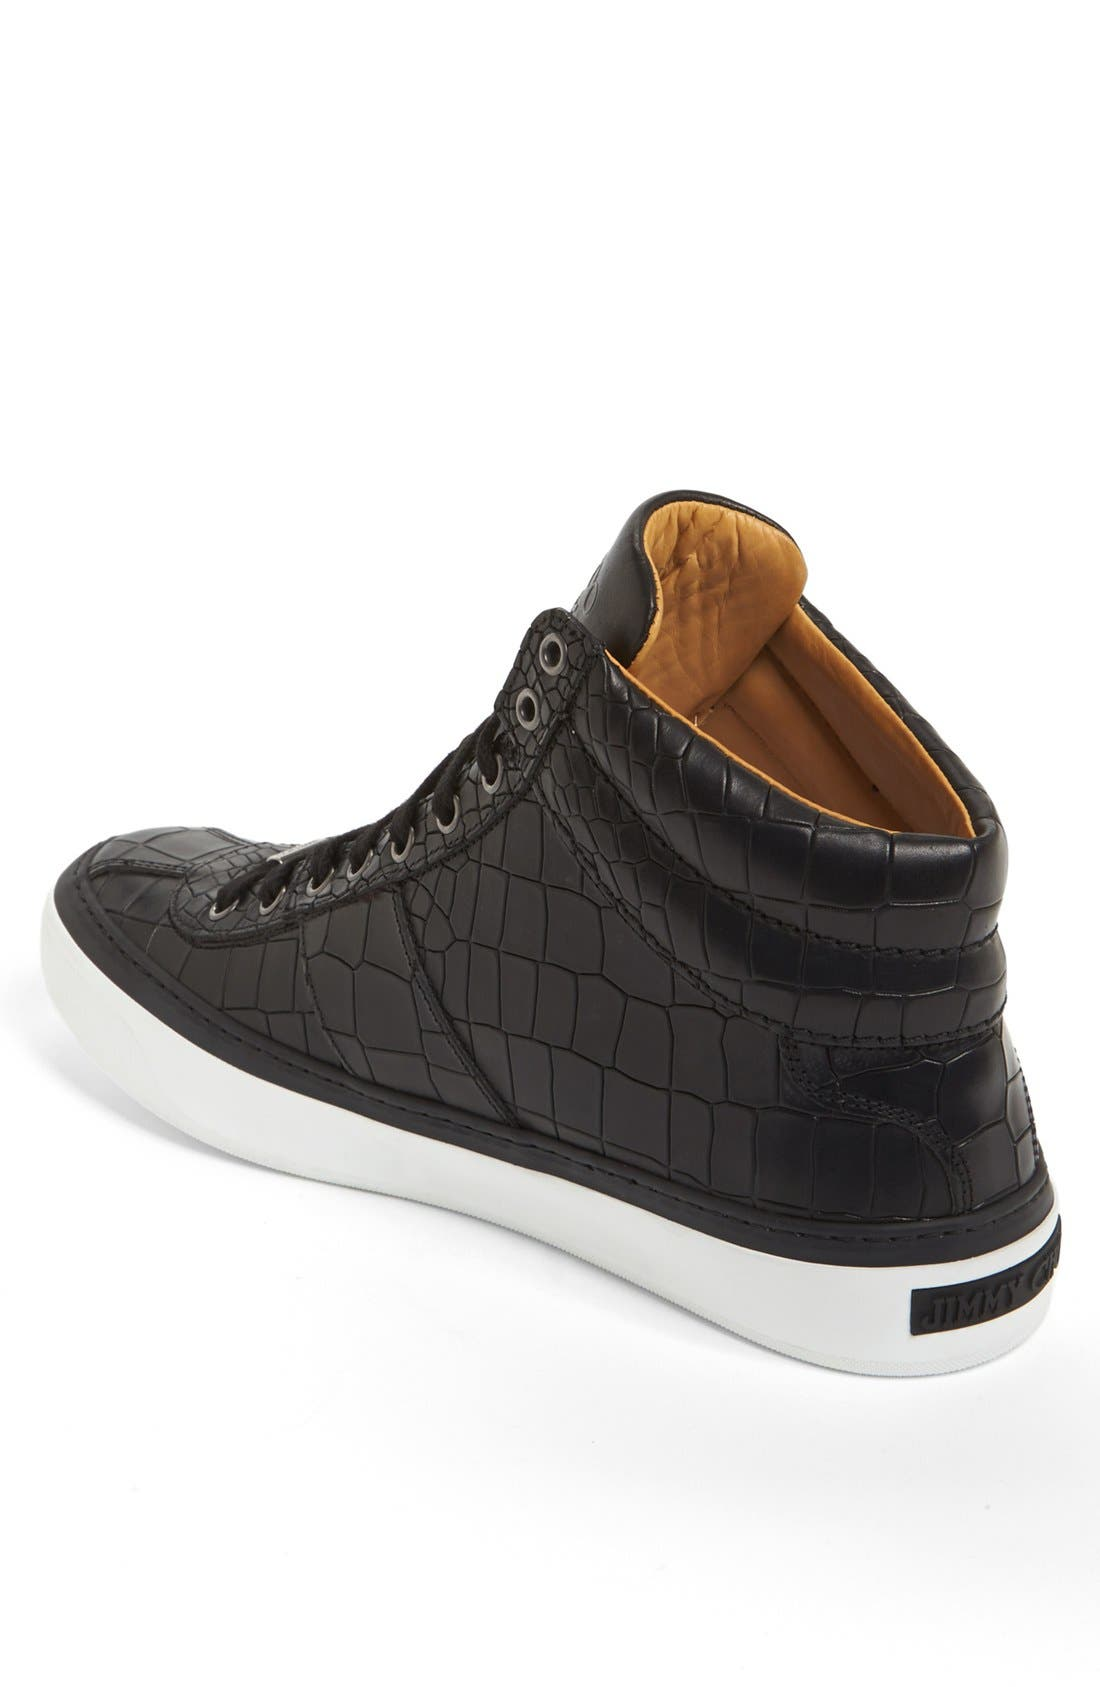 Belgravia High Top Sneaker,                             Alternate thumbnail 2, color,                             Black